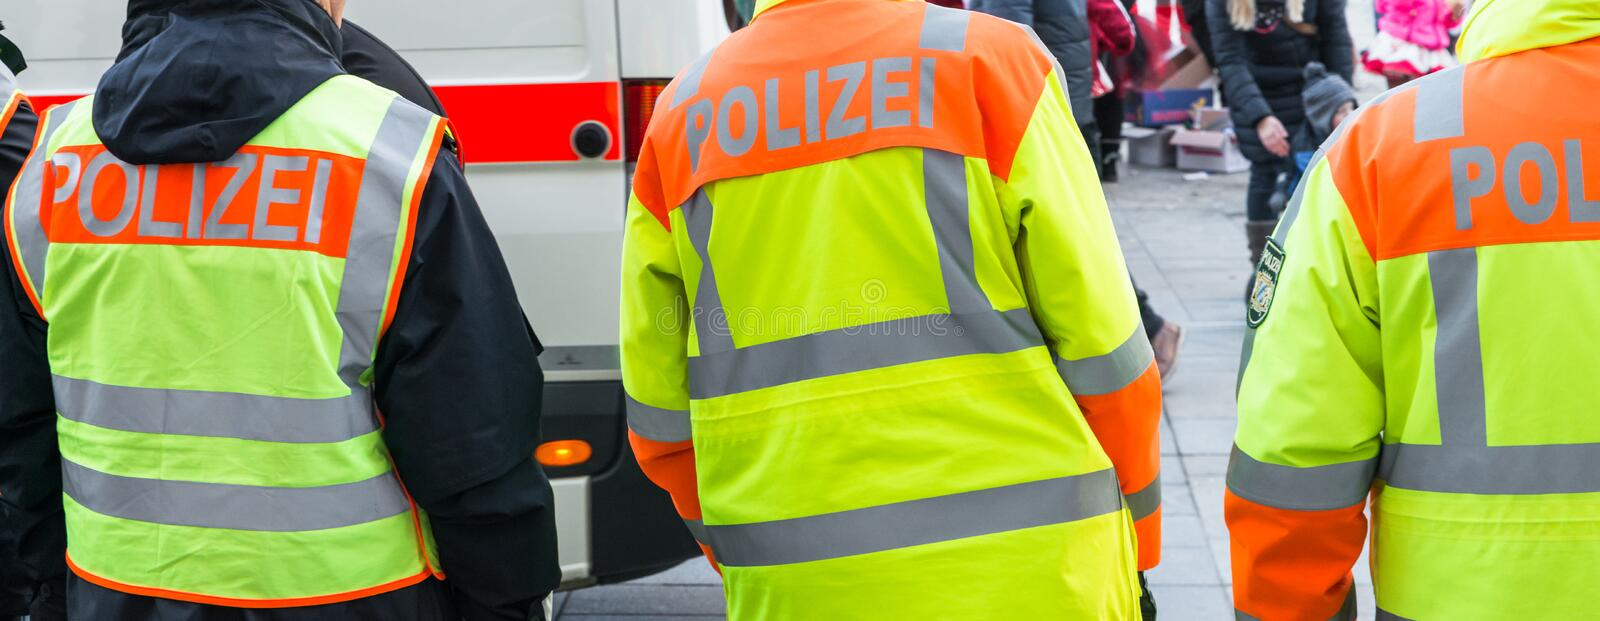 German police officer at public operation royalty free stock image